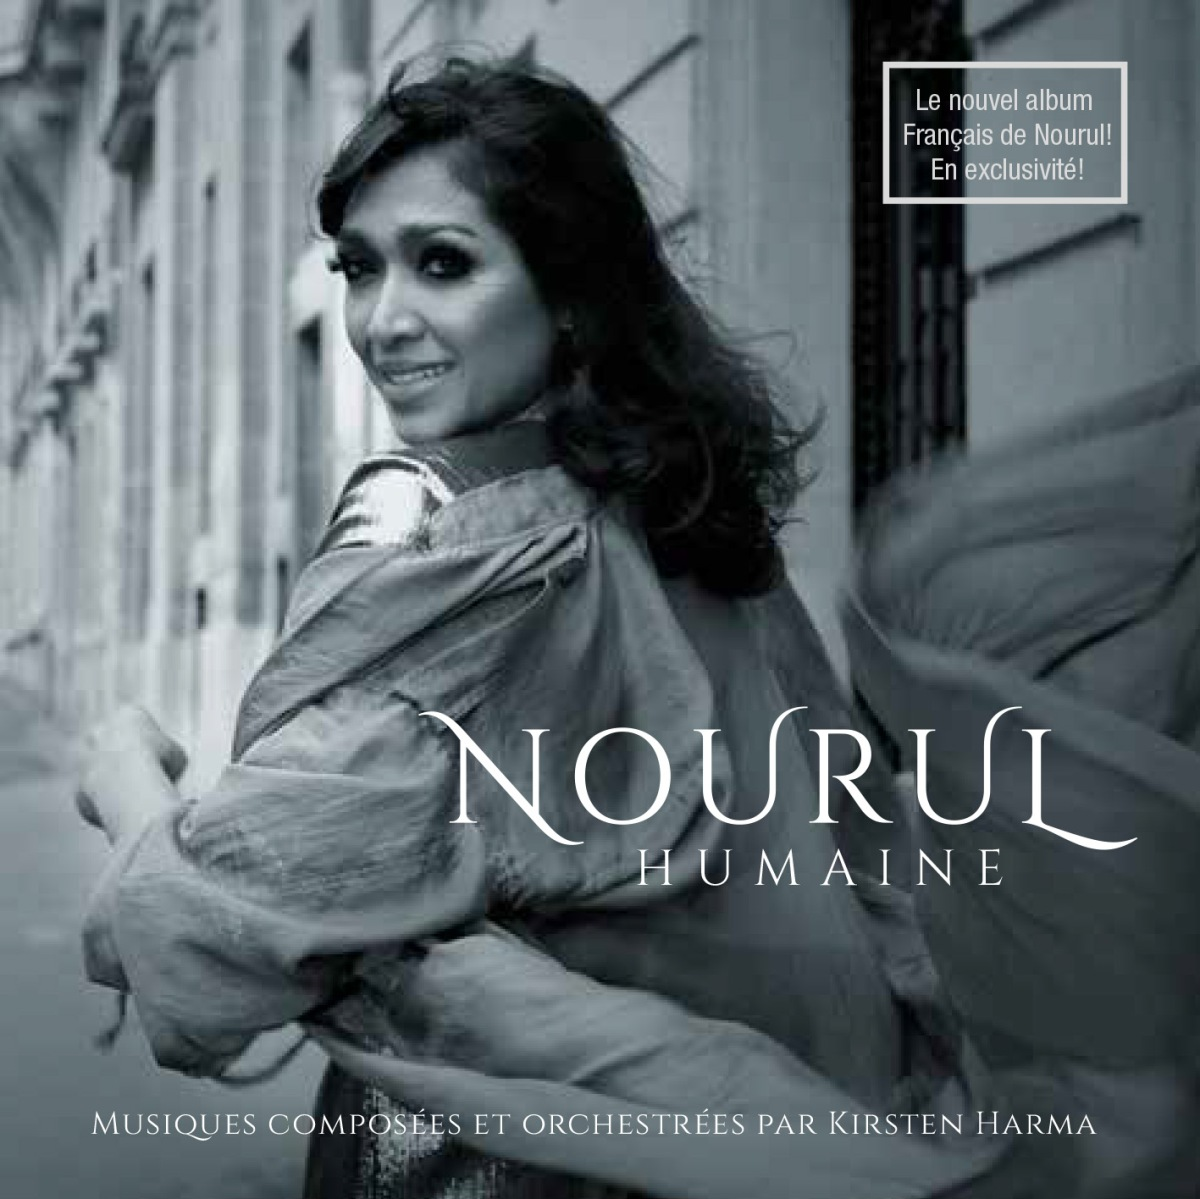 HUMAINE by NOURUL